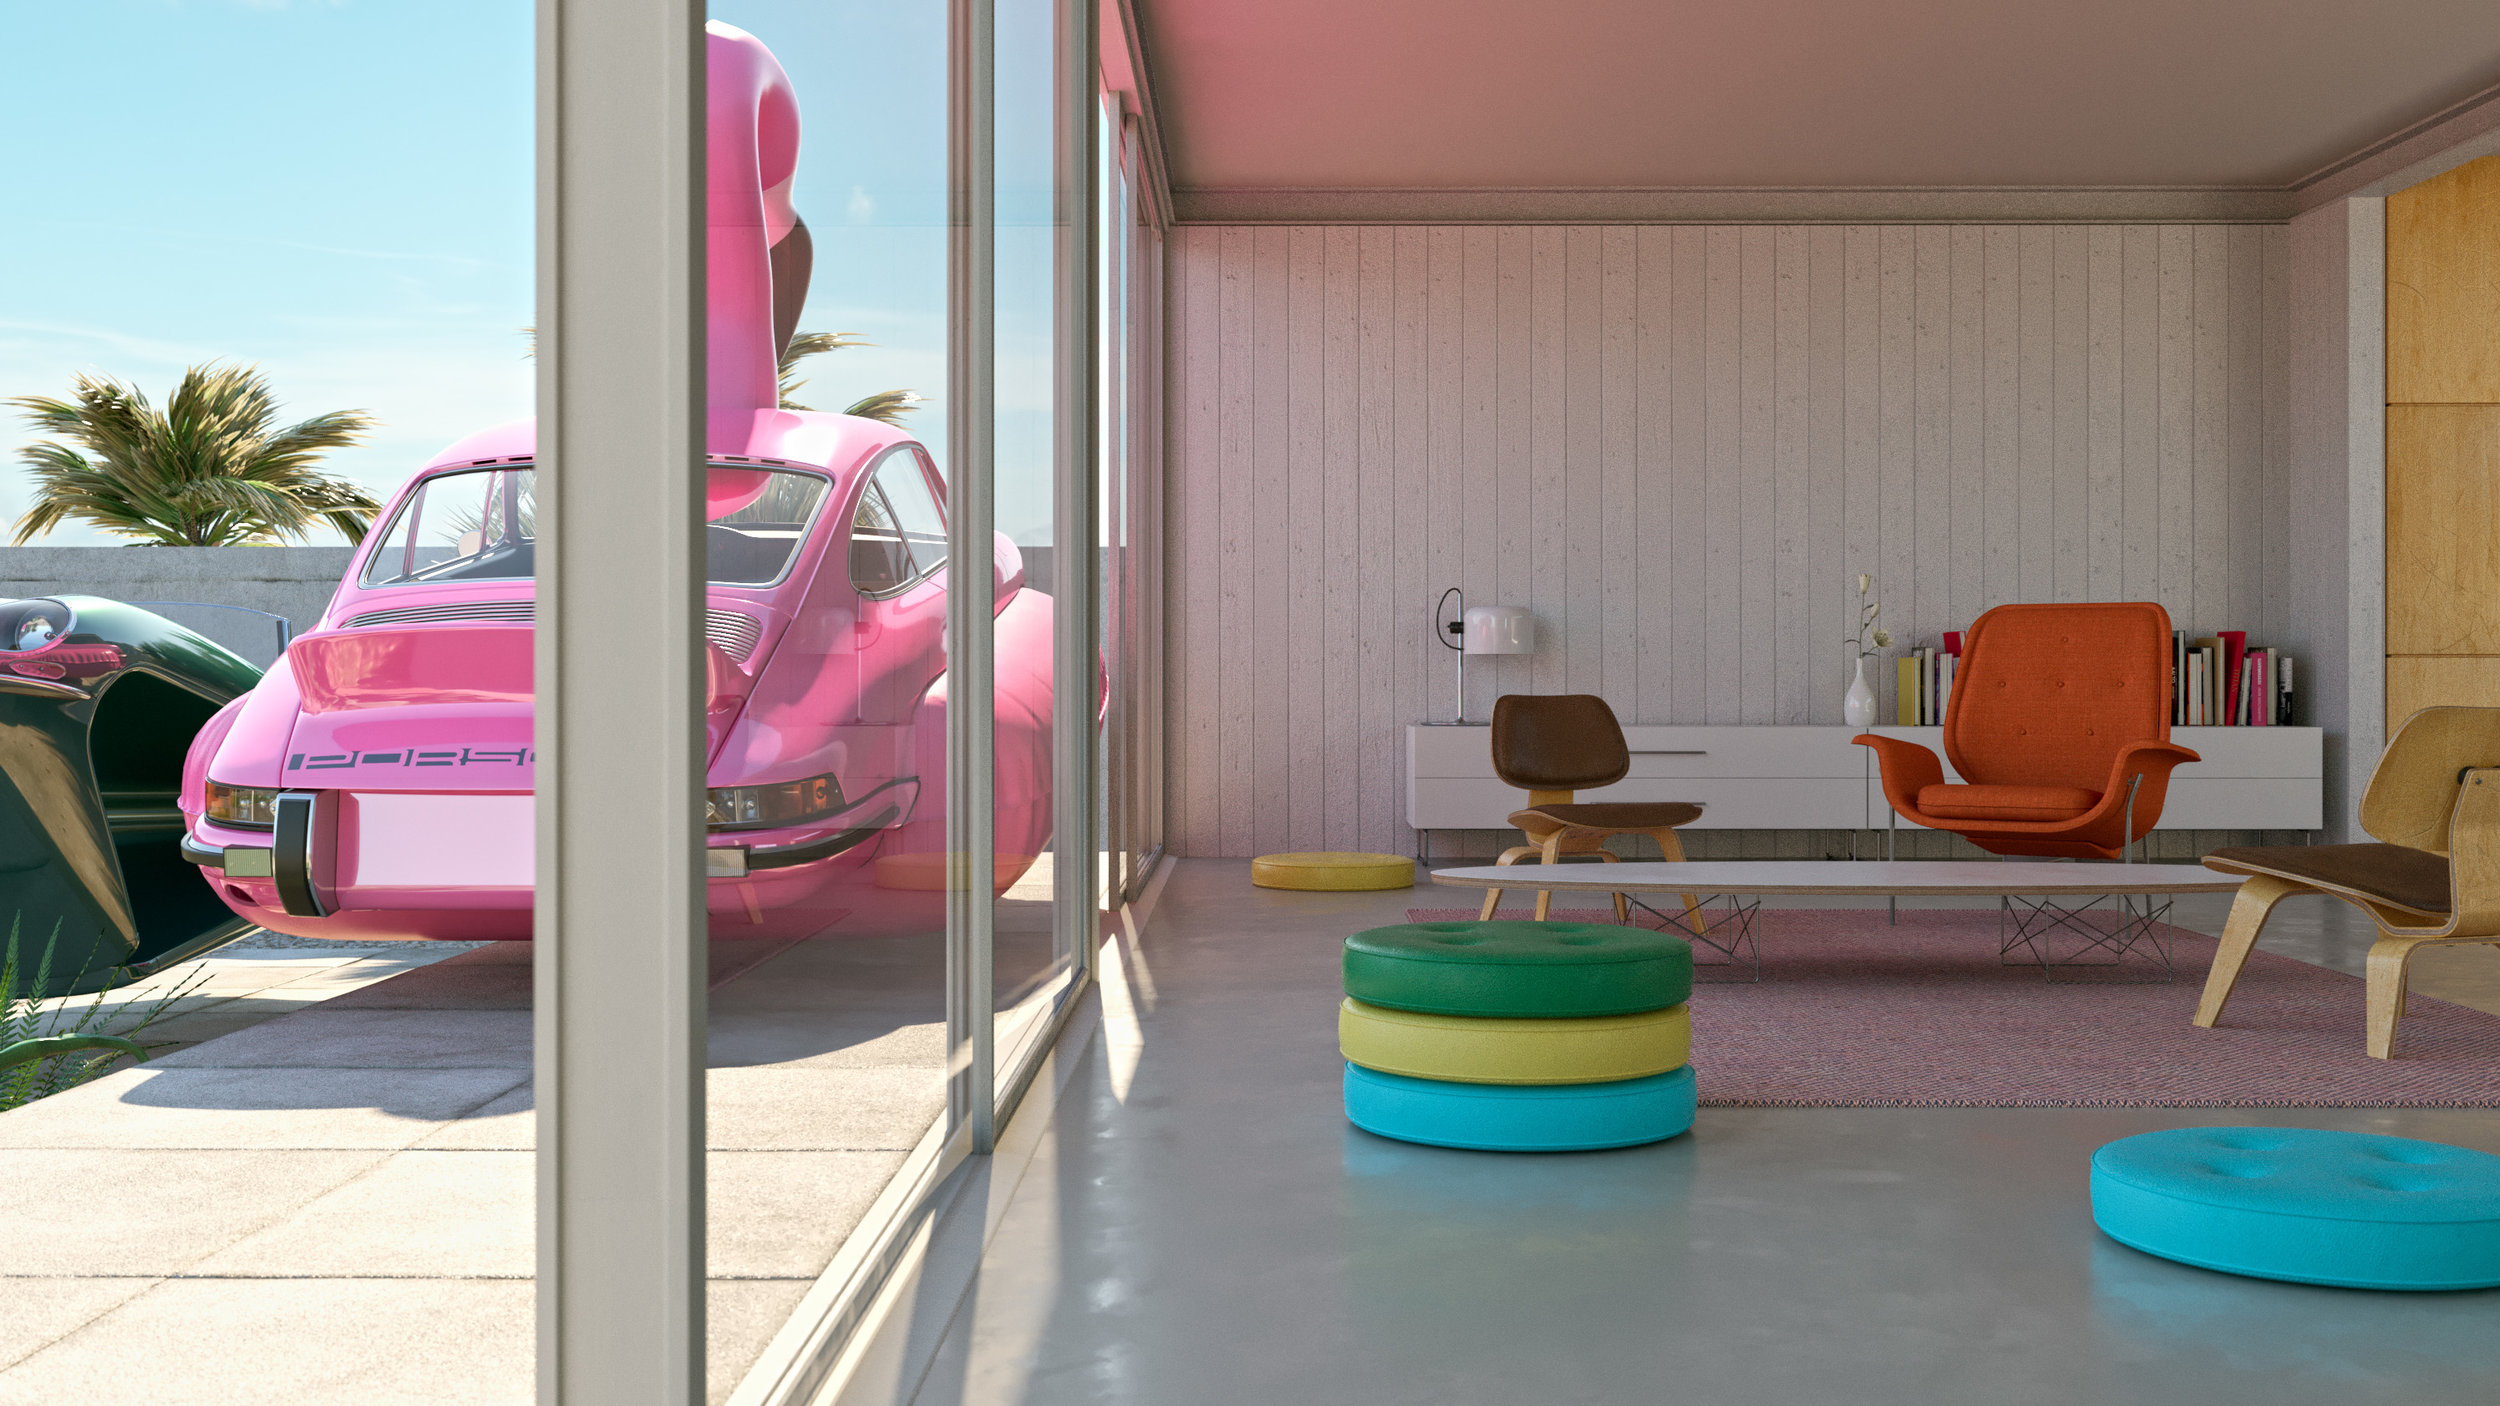 interior_flamingo.jpg